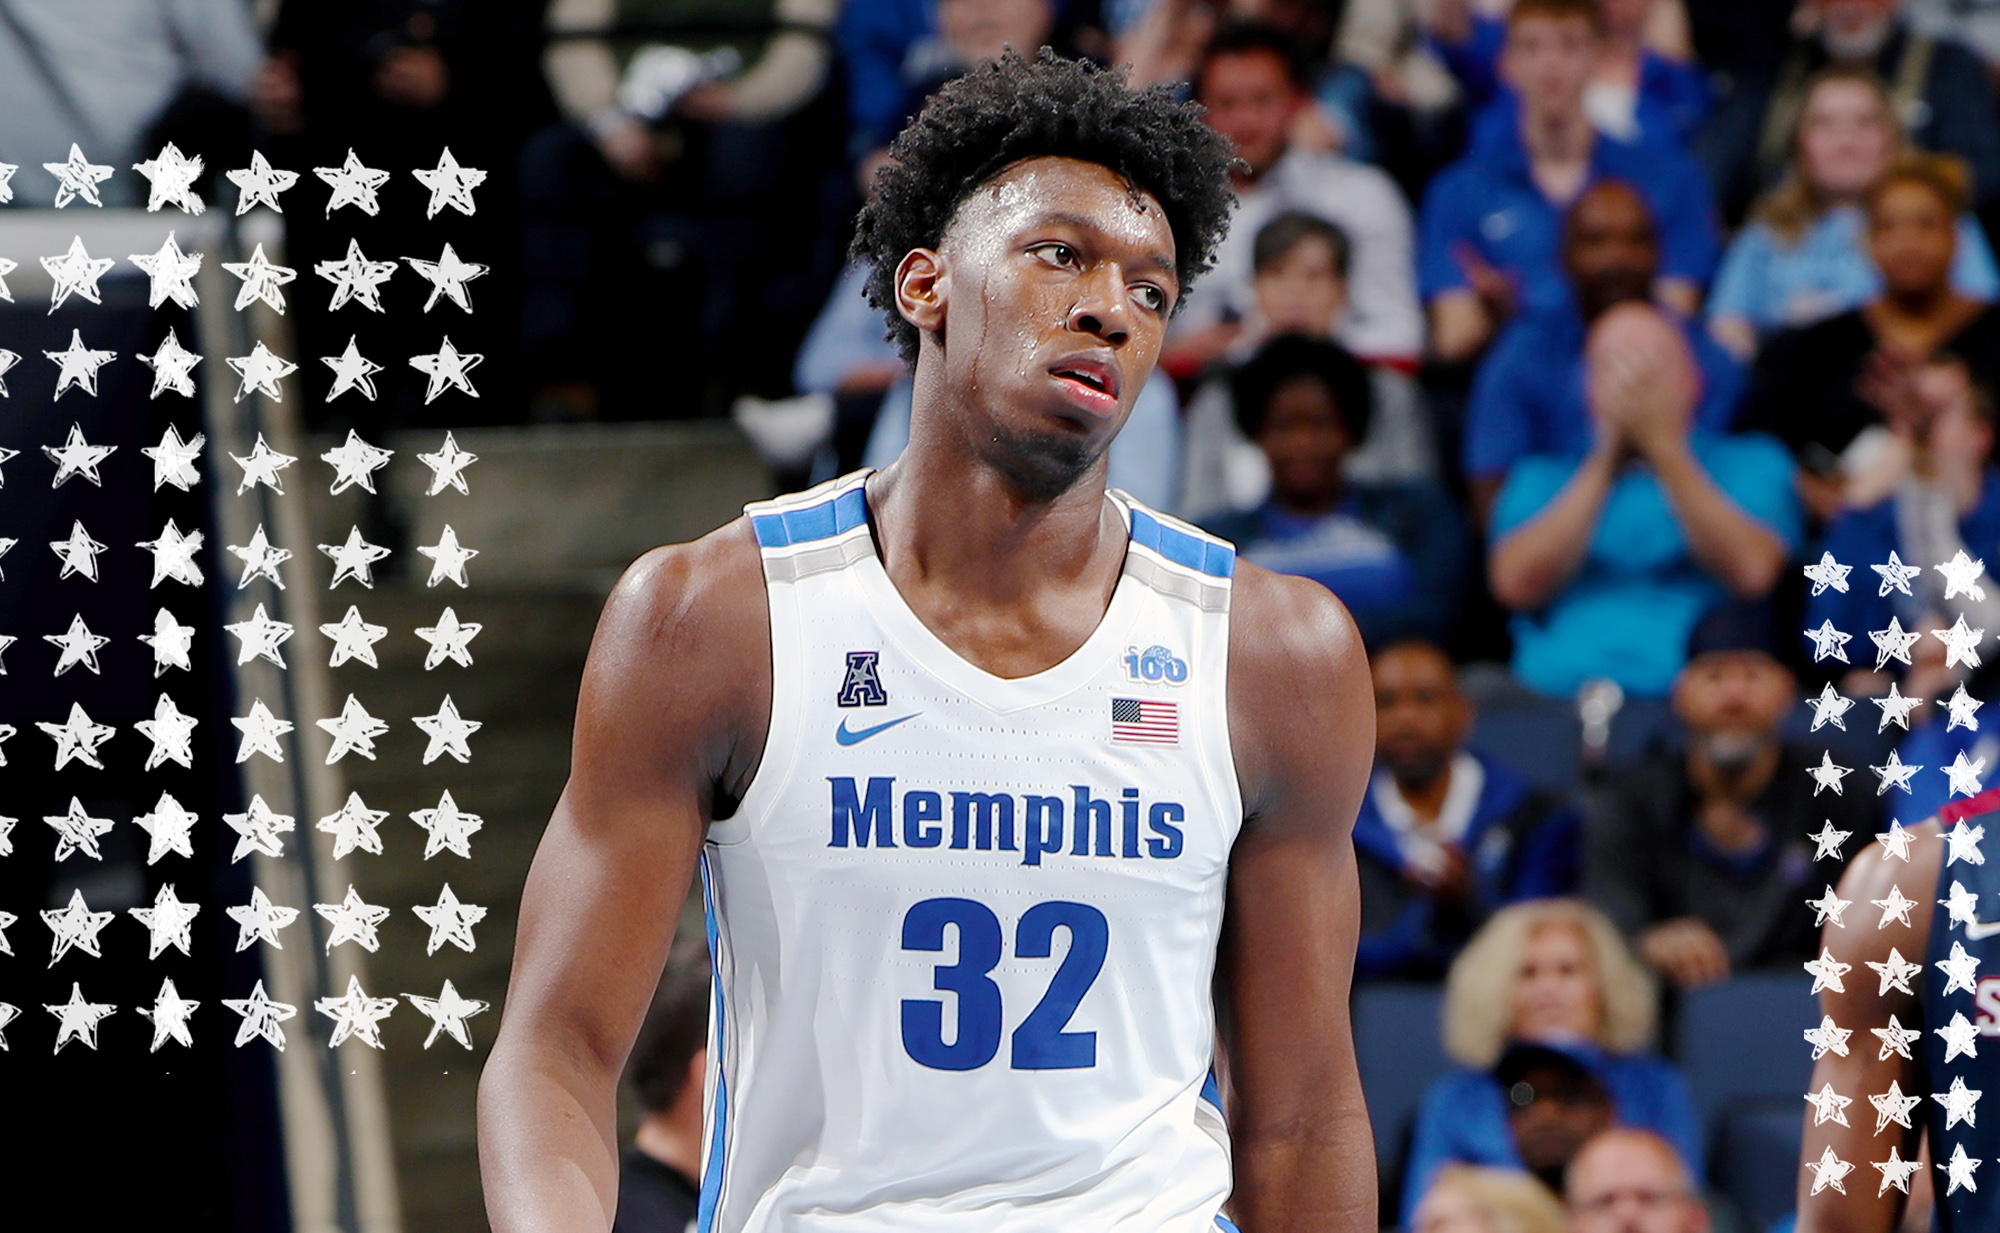 James Wiseman looks frustrated on the court for Memphis.